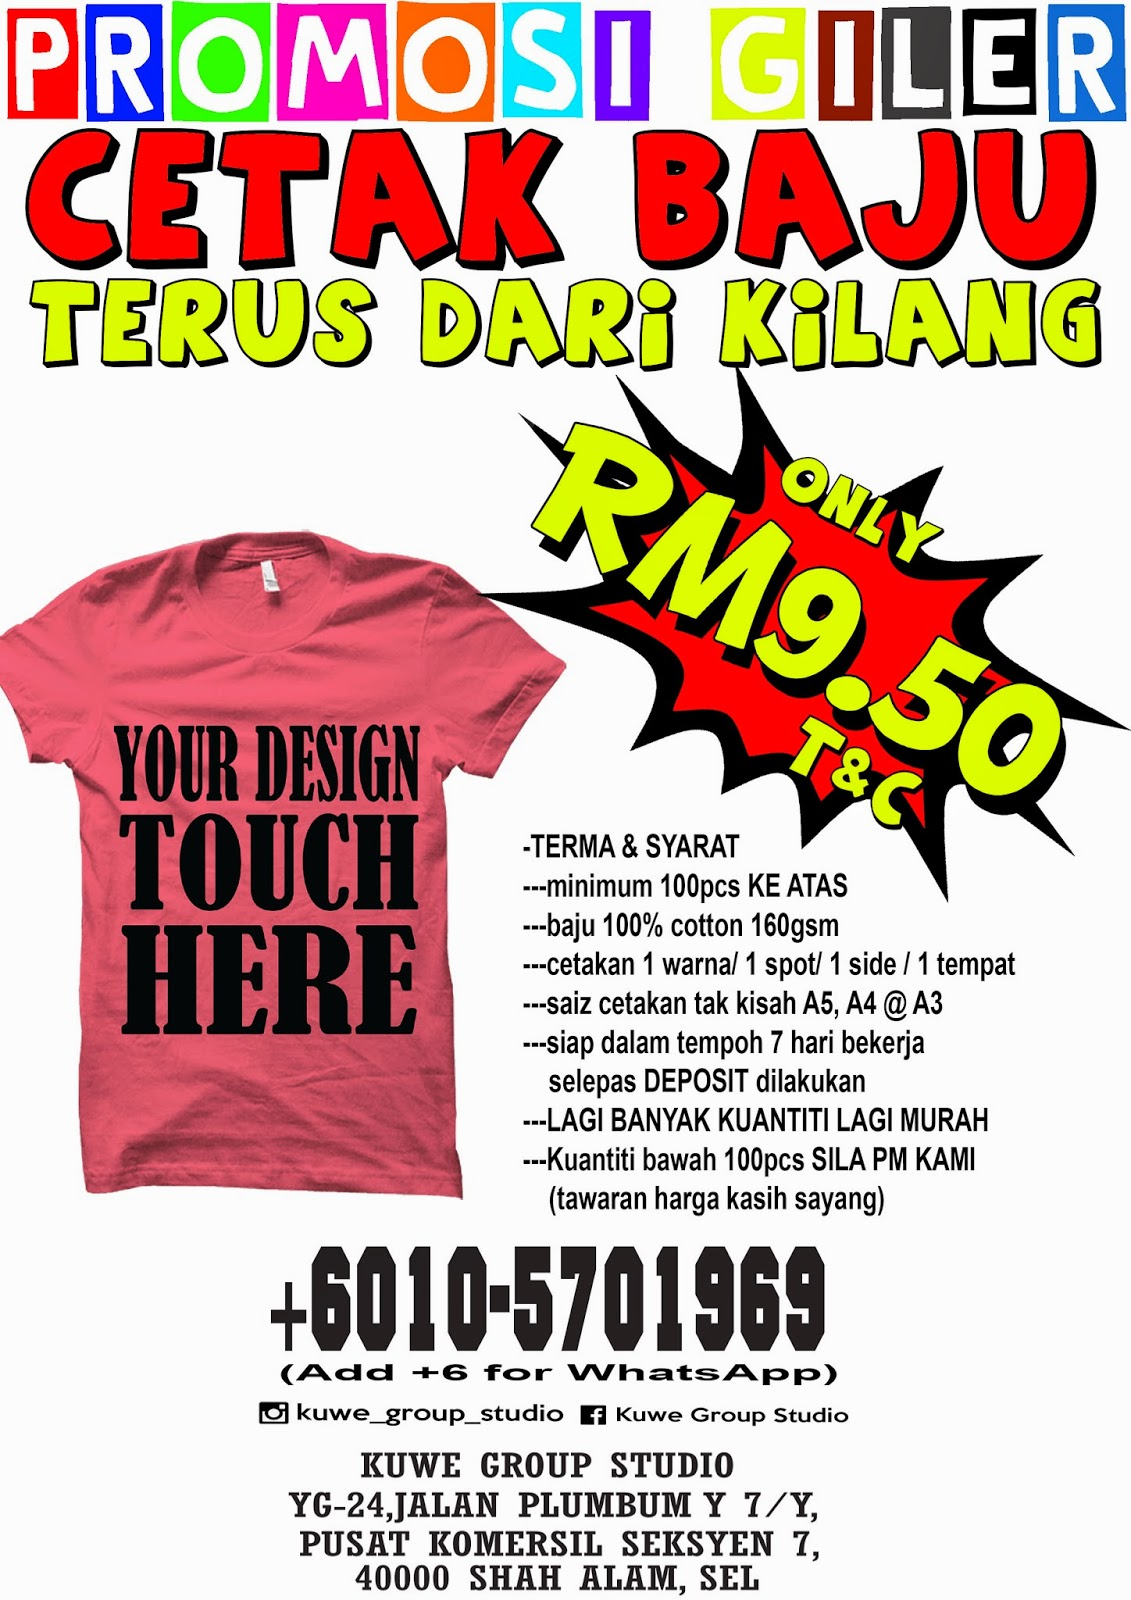 Design t shirt murah - The Design Of T Shirt Must Have 1 Color Only On 1 Spot And 1 Side Area Of Printing